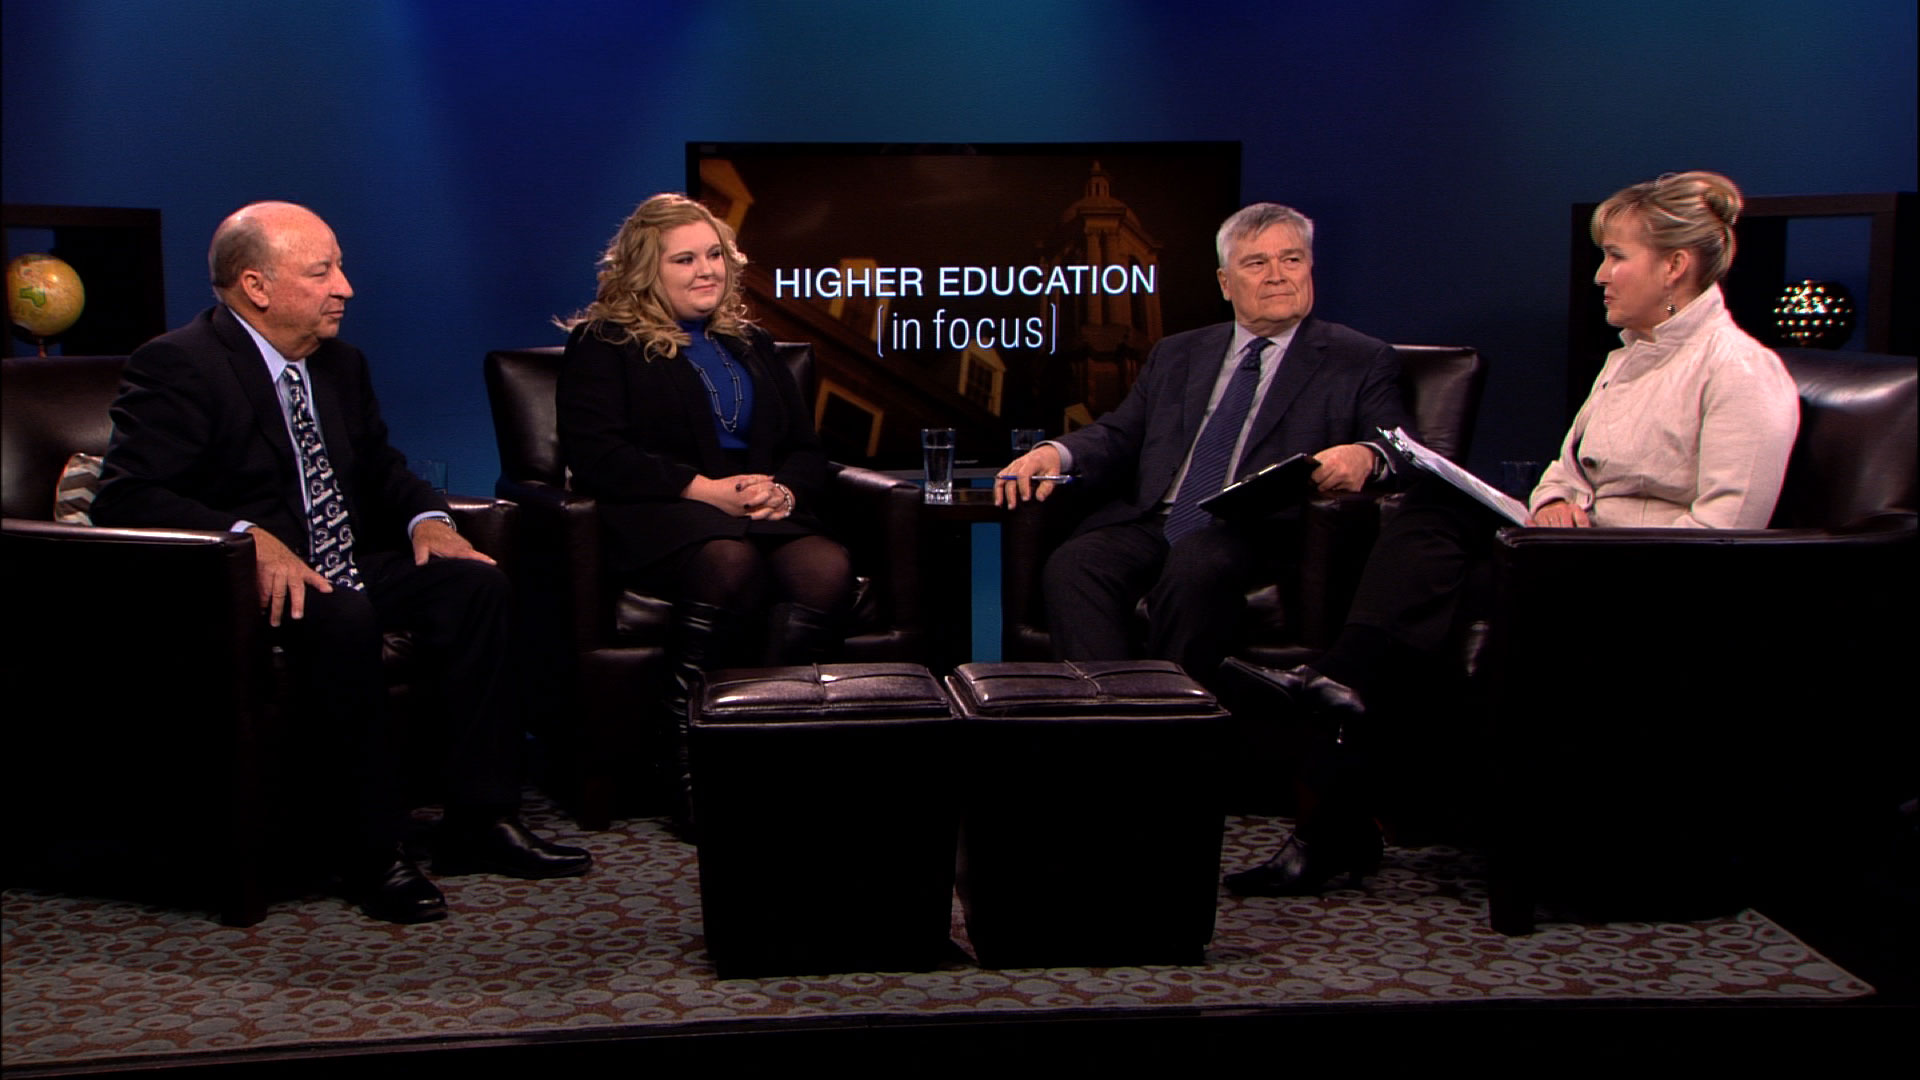 Steve Sheetz, Loretta Zeth, Eric Baron and Patty Satalia on the set of Higher Education in Focus